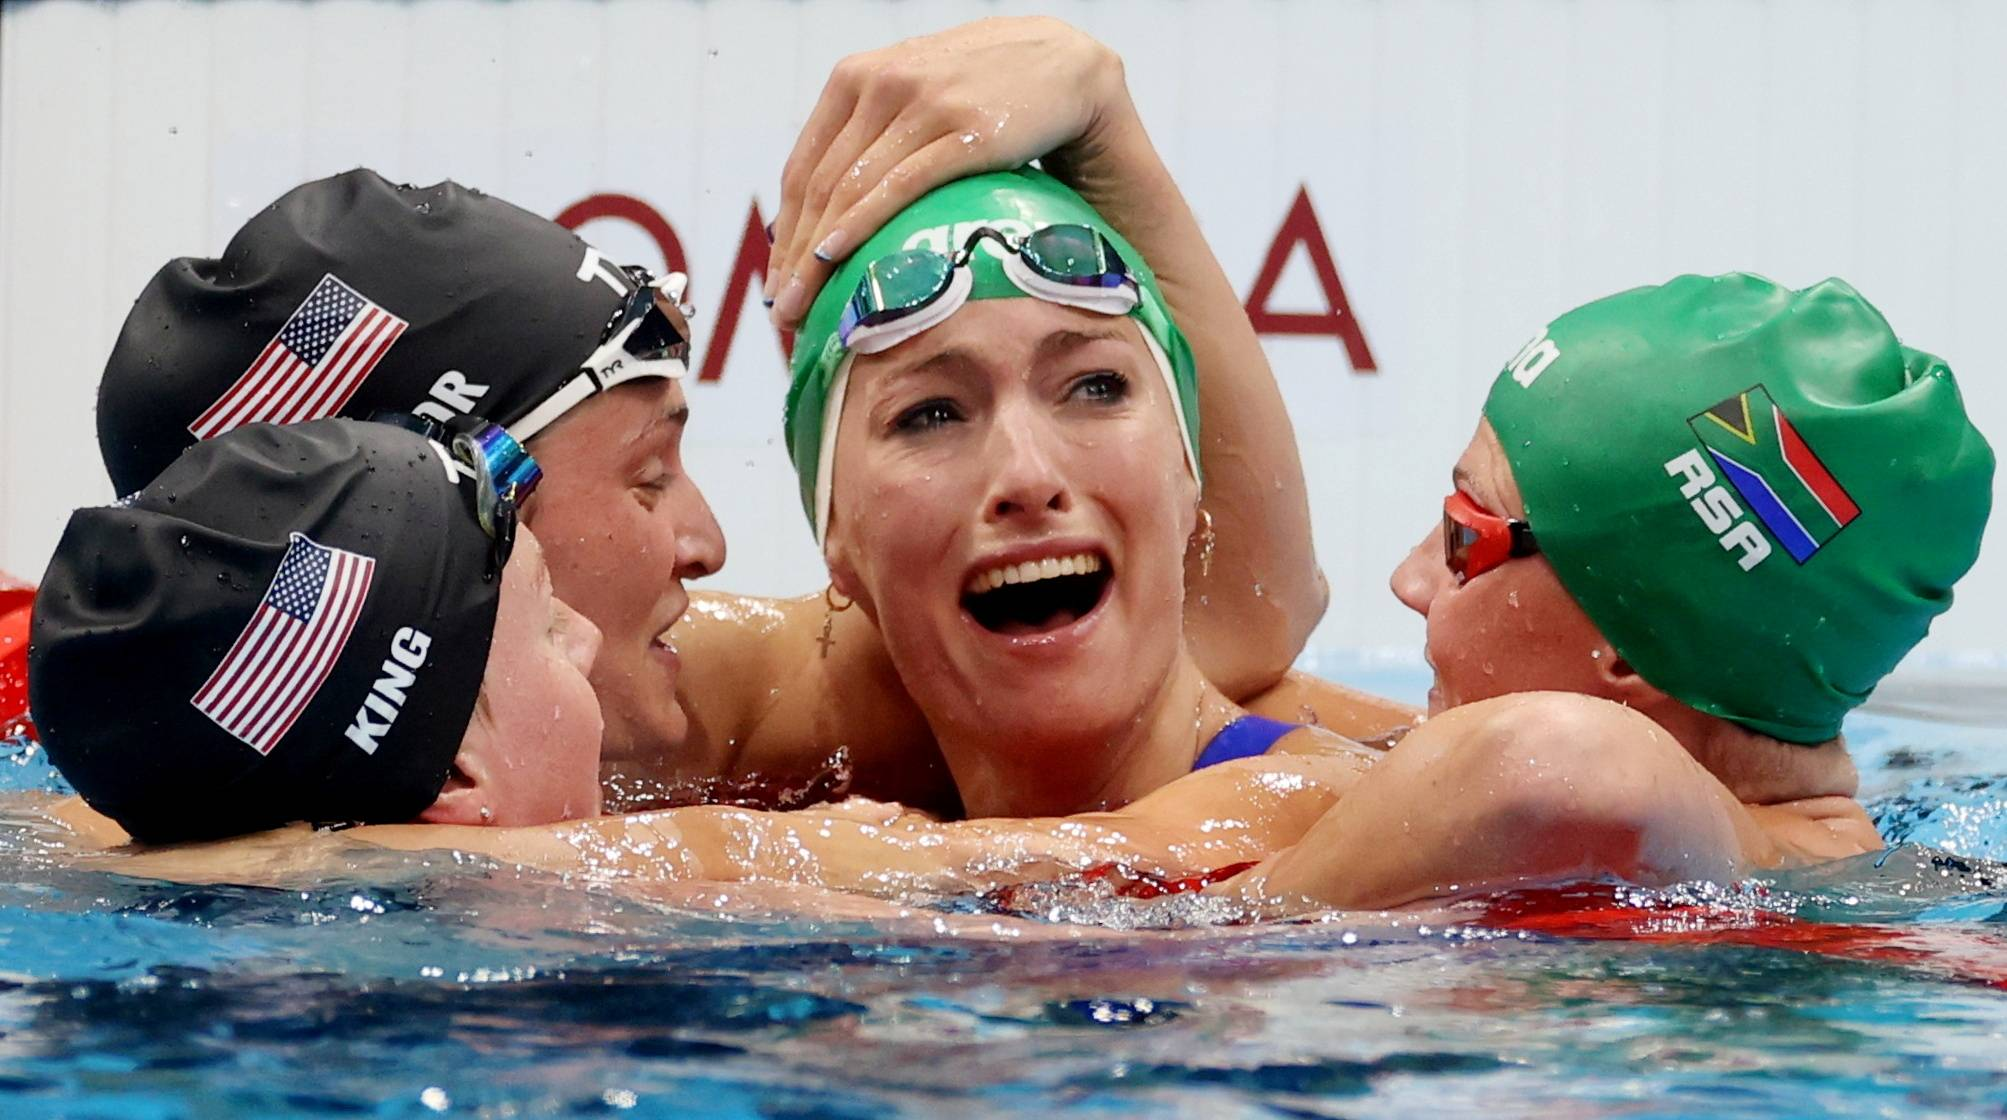 Swimmers in the women's 200-meter breaststroke congratulate South Africa's Tatjana Schoenmaker for setting a new world record. | REUTERS